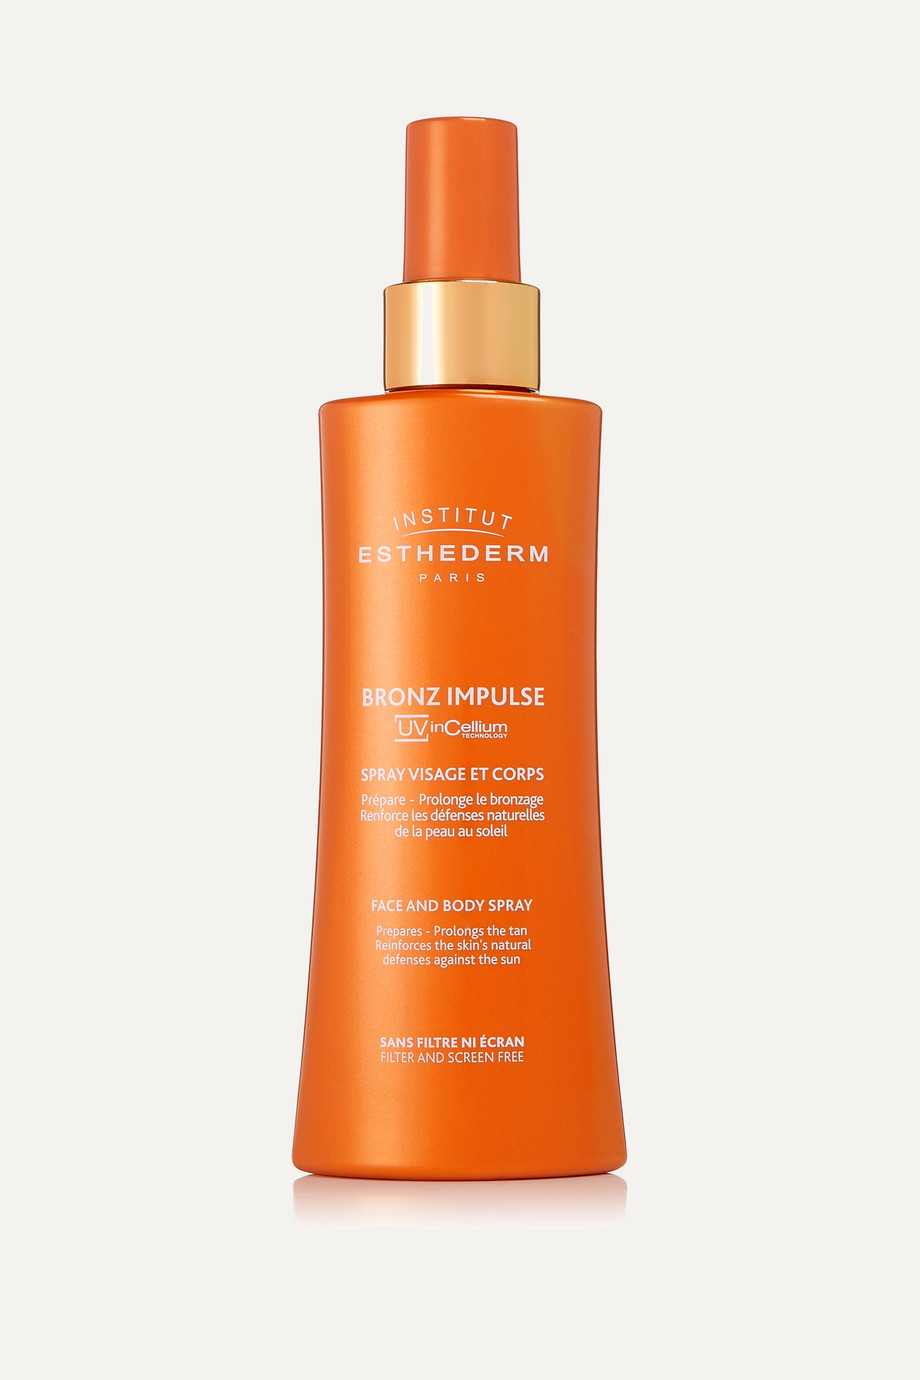 Institut Esthederm Bronz Impulse Face and Body Spray, 150ml